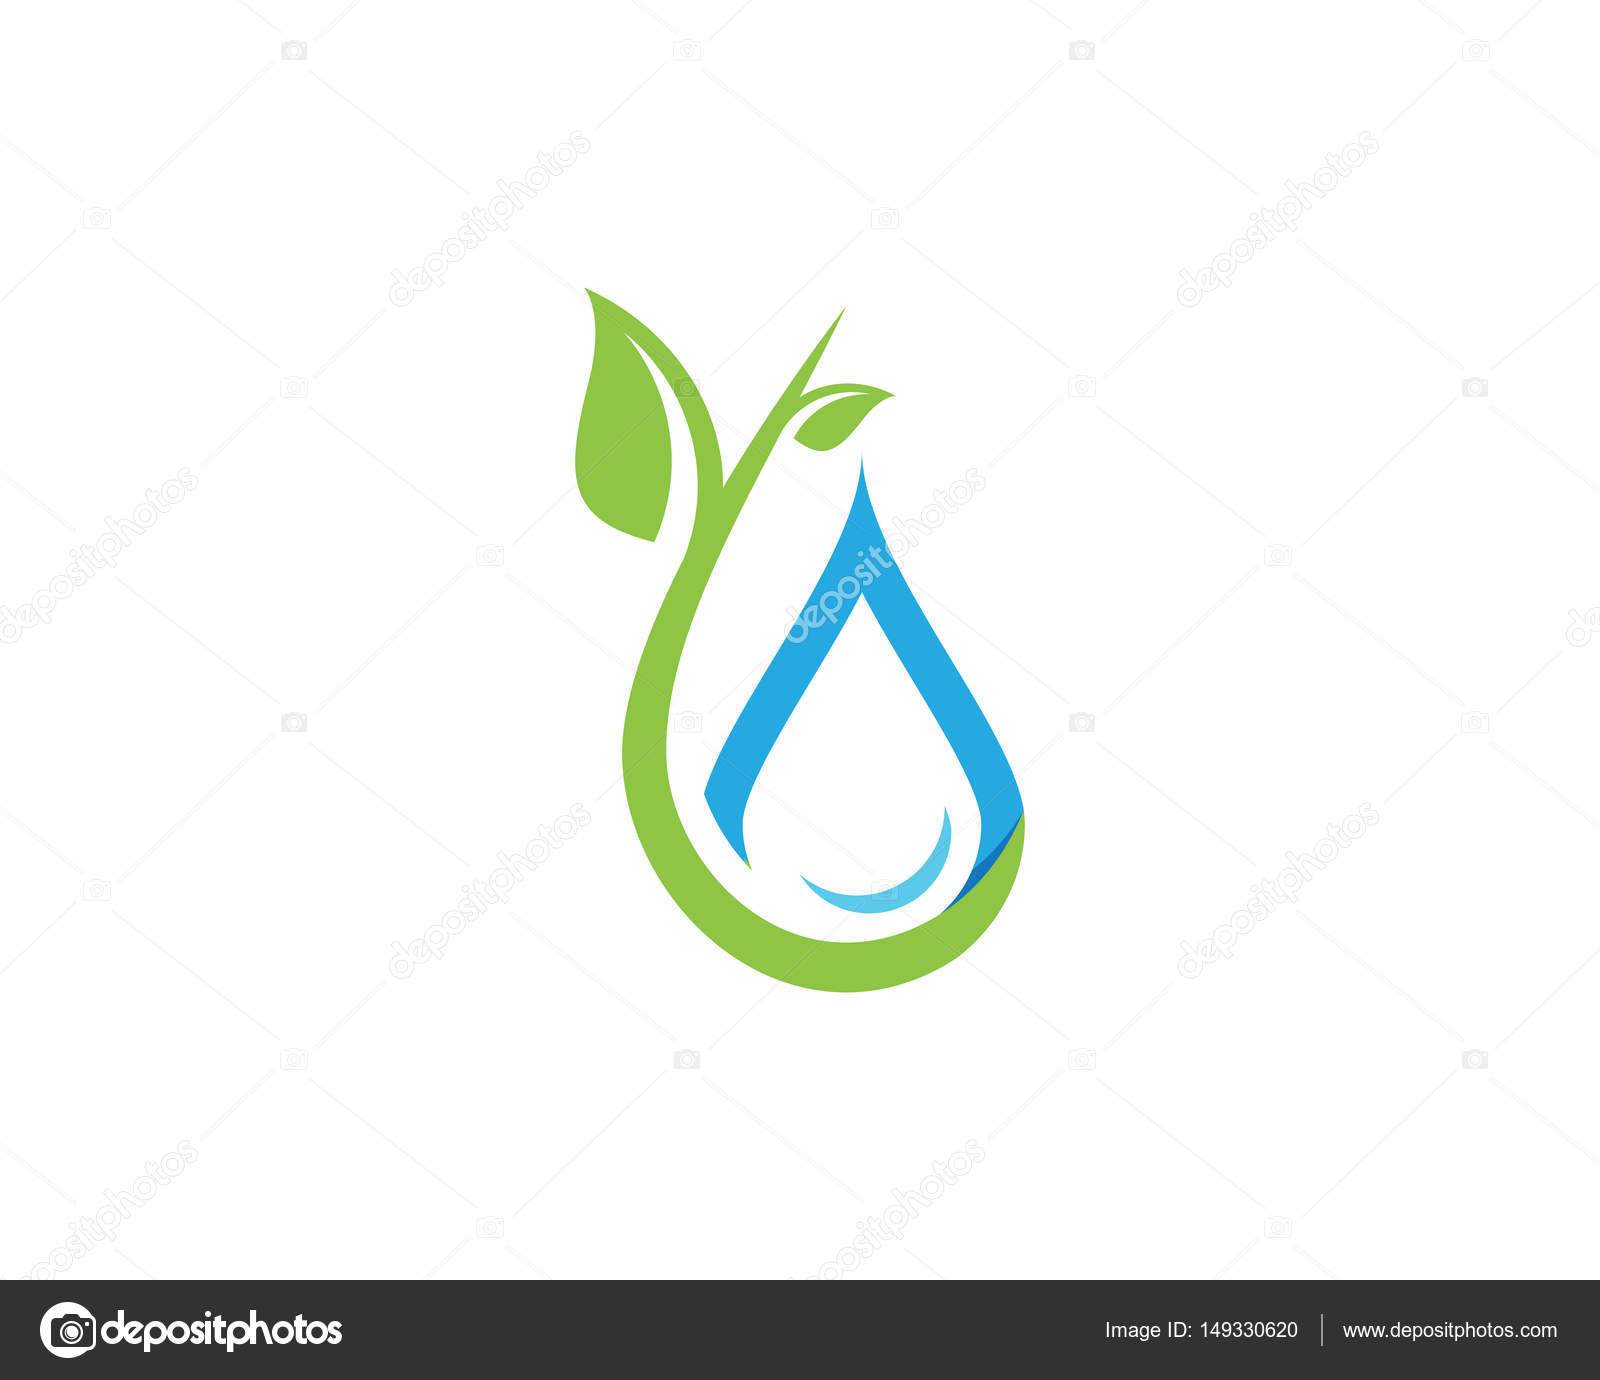 Water drops logo and symbols stock vector elaelo 149330620 water drops logo and symbols stock vector biocorpaavc Image collections